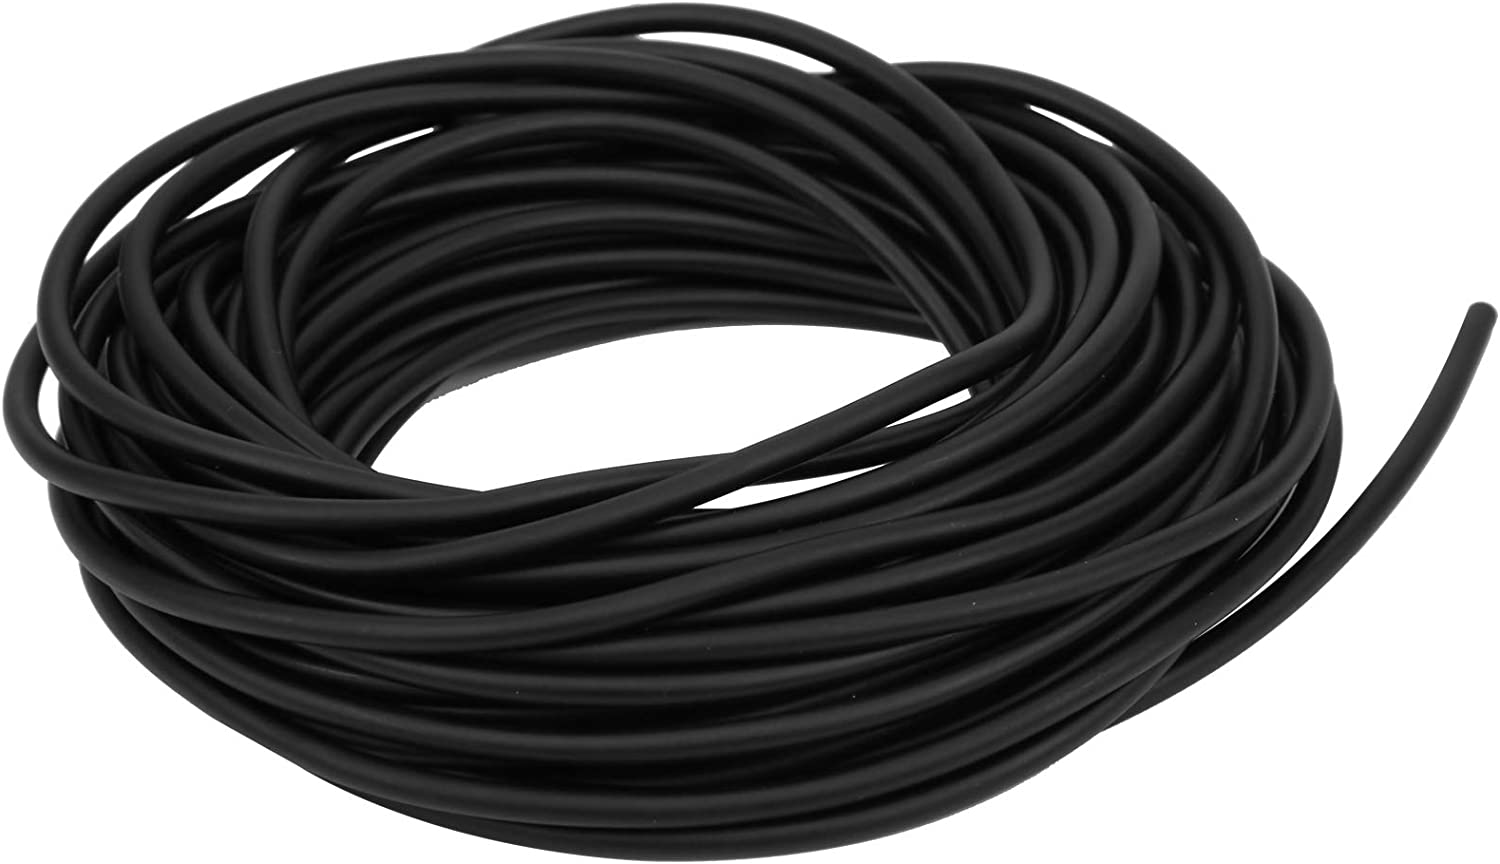 QYSZYG Natural Safety and trust Max 90% OFF Latex Band 10m Slingshot Tube Rubber Elastic